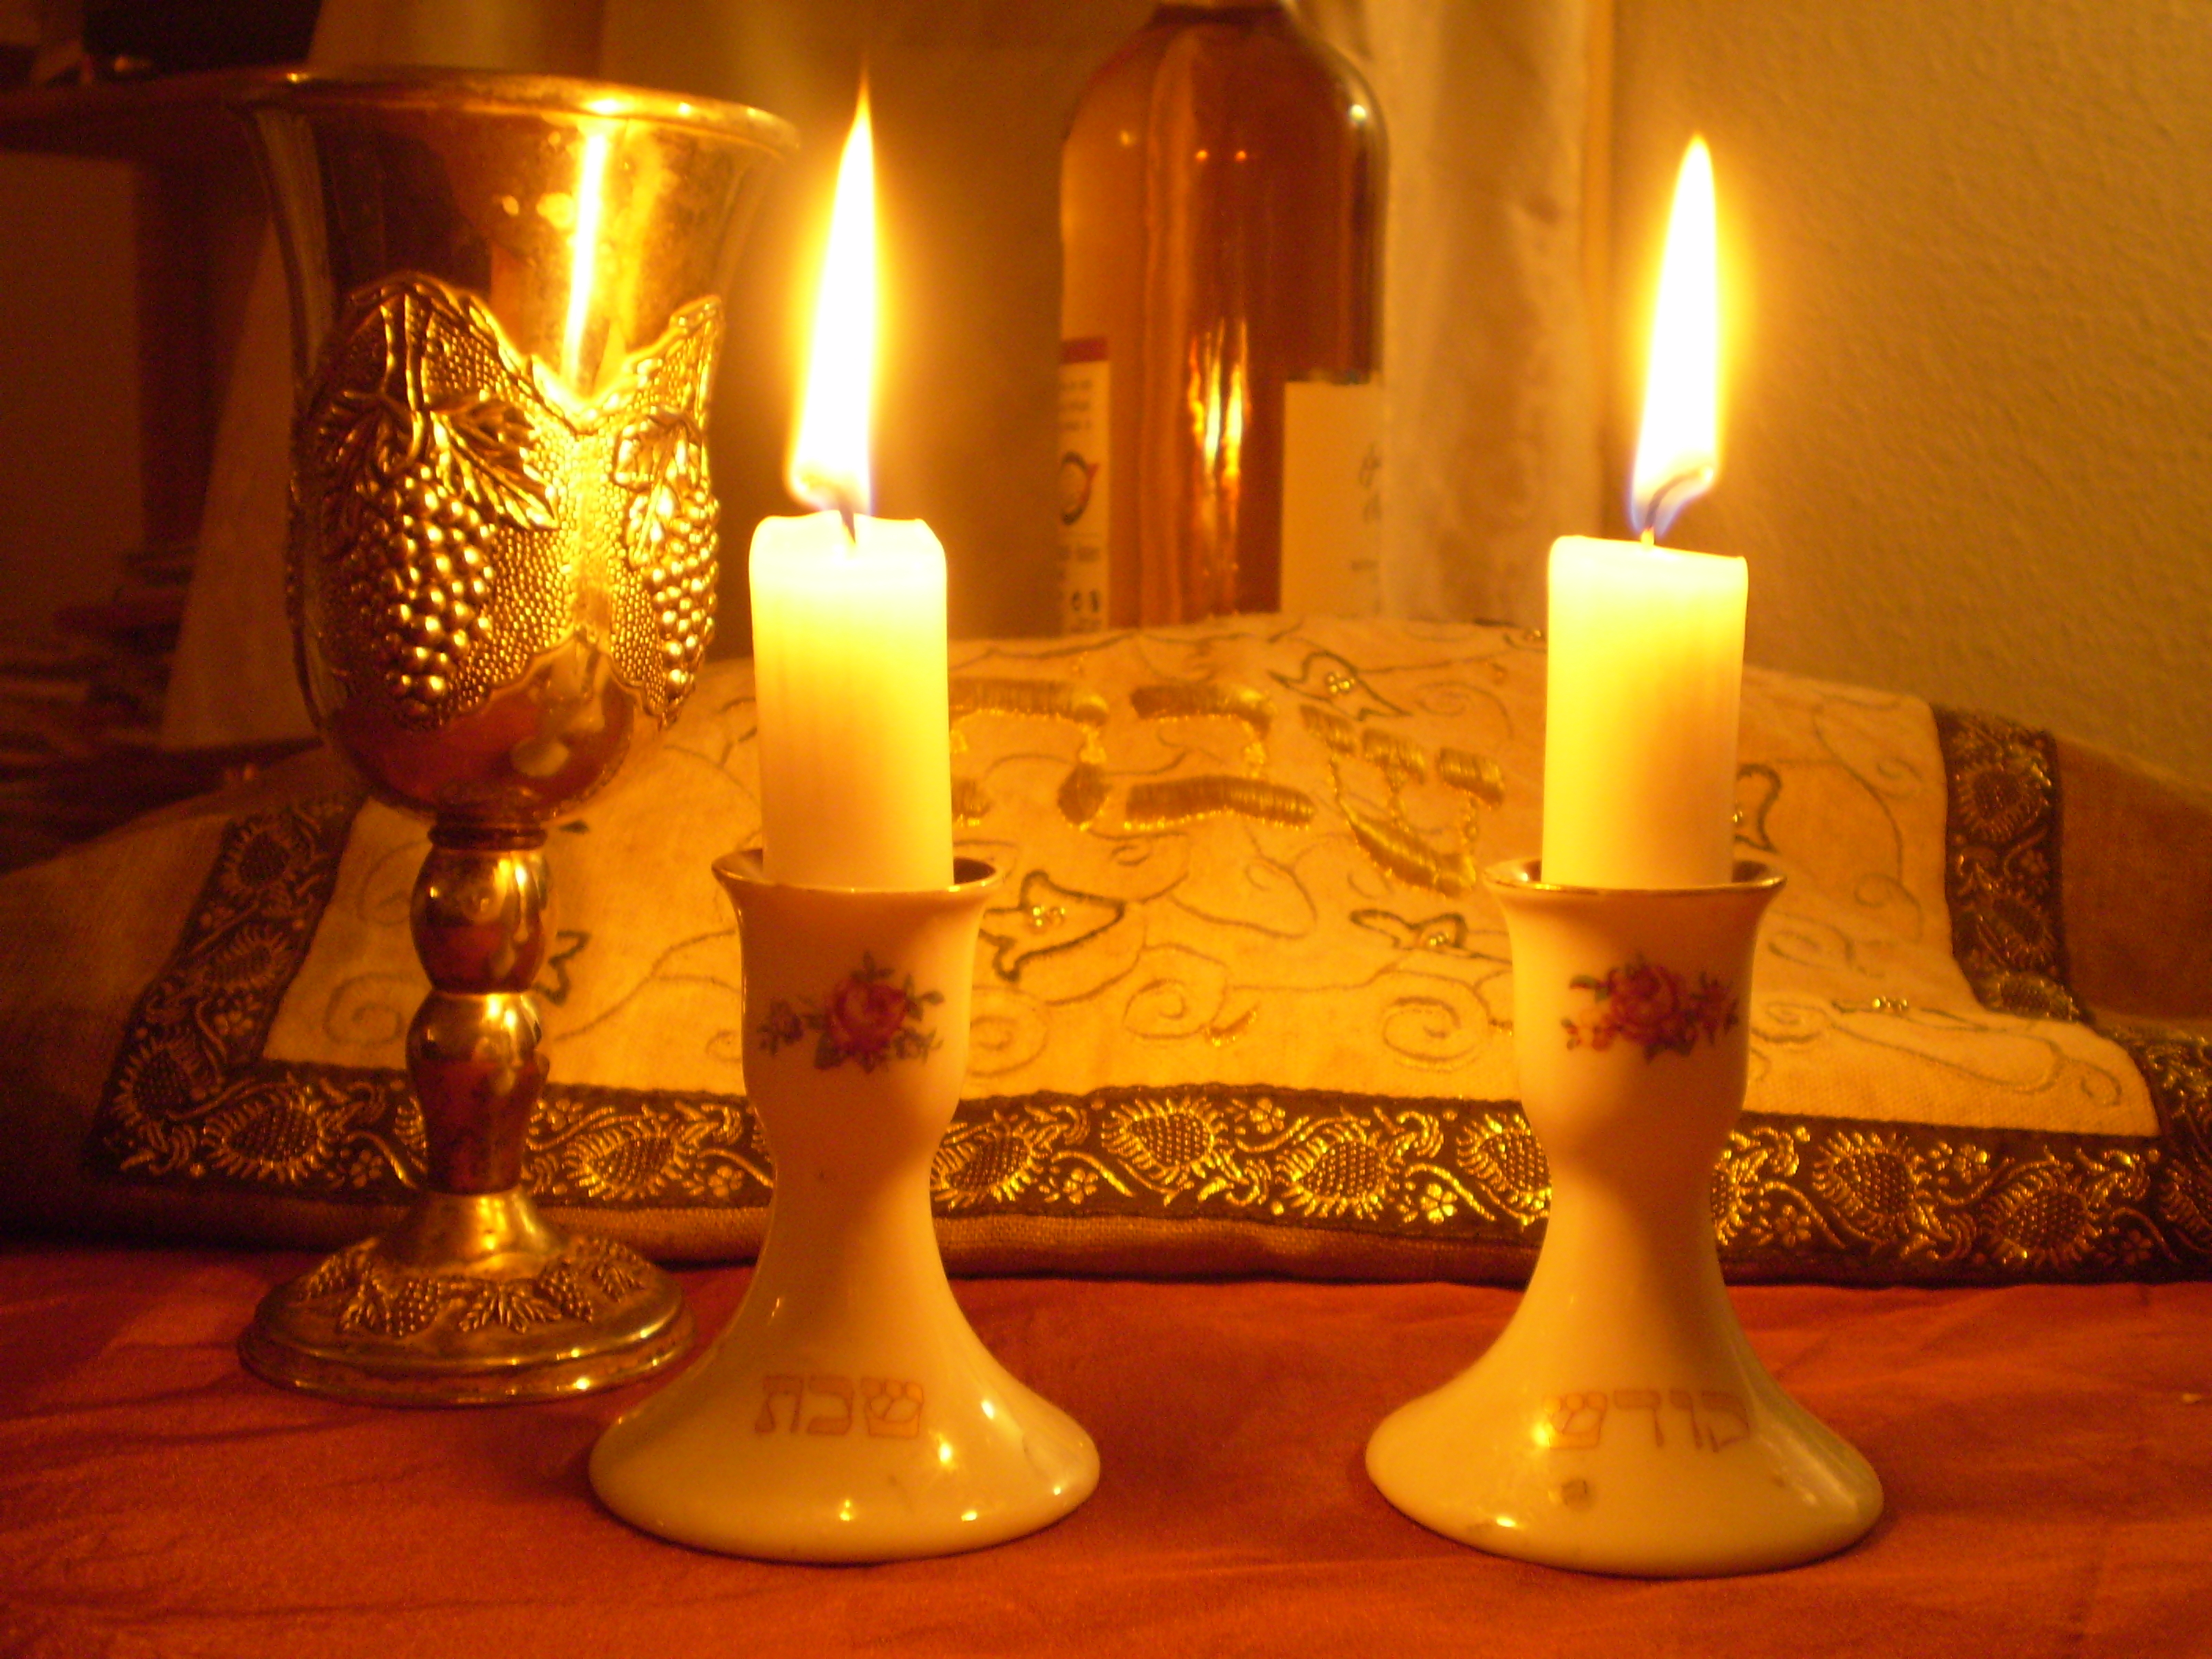 Shabbat Candle Lighting Blessing: Audio and Text